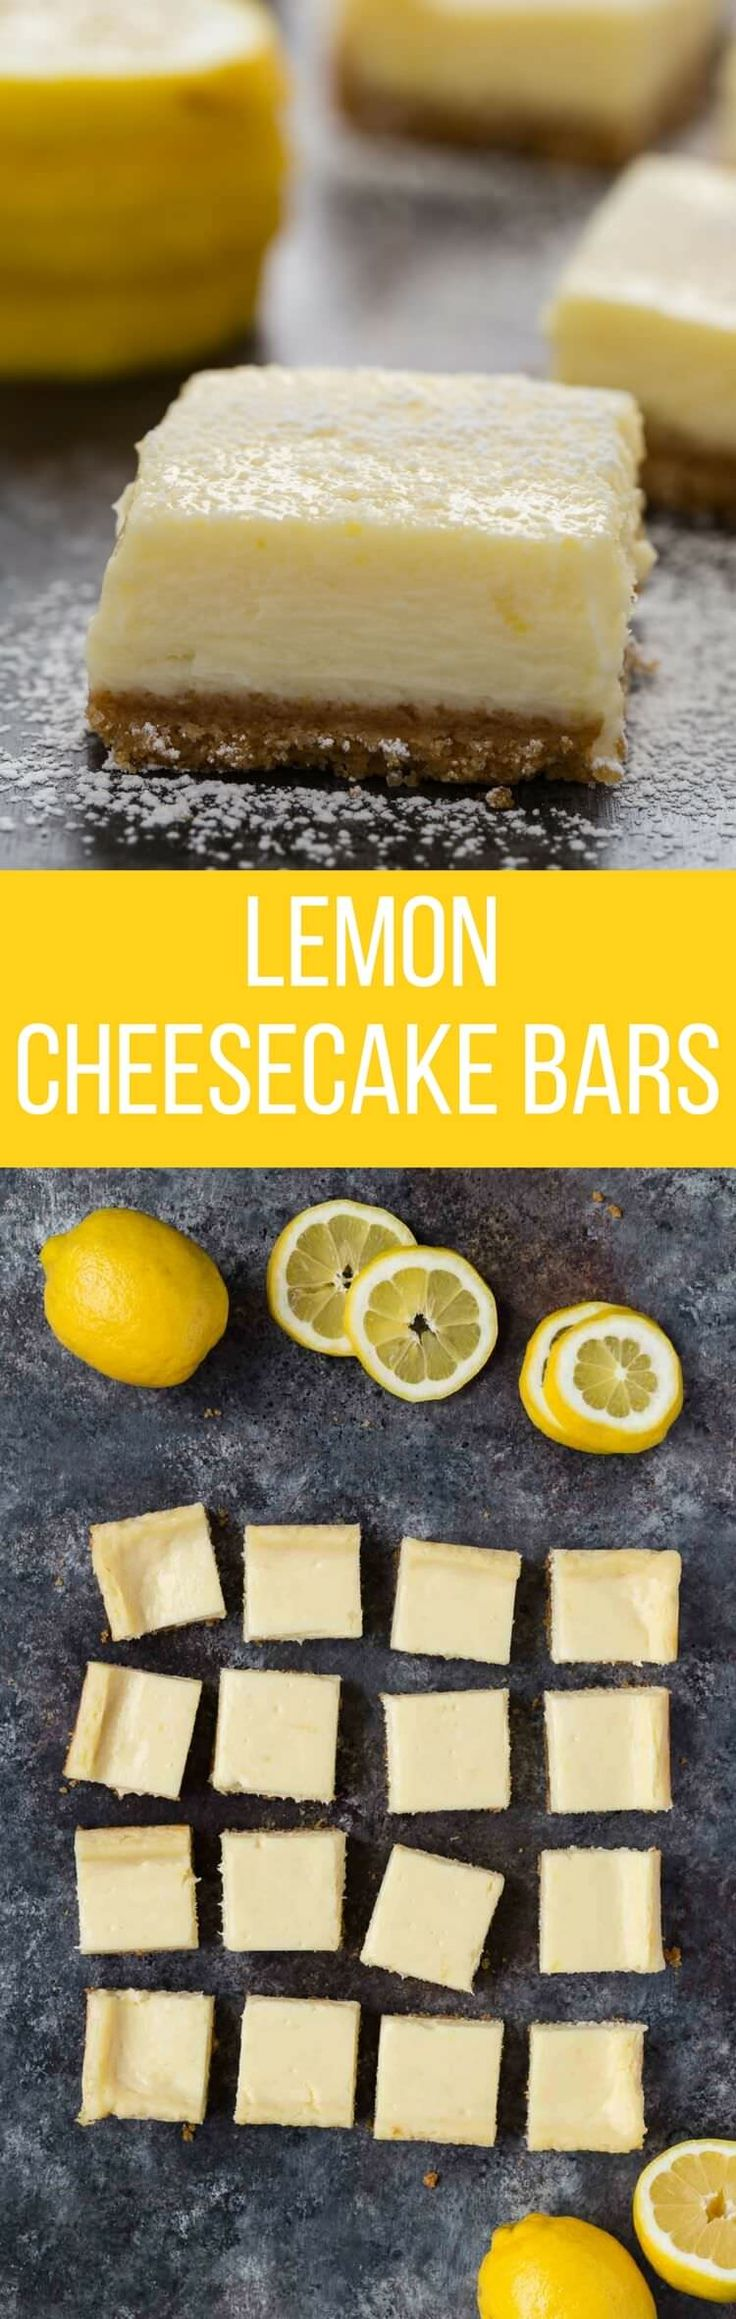 Lemon cheesecake bars.  The perfect balance of sweet and sour, these cream…